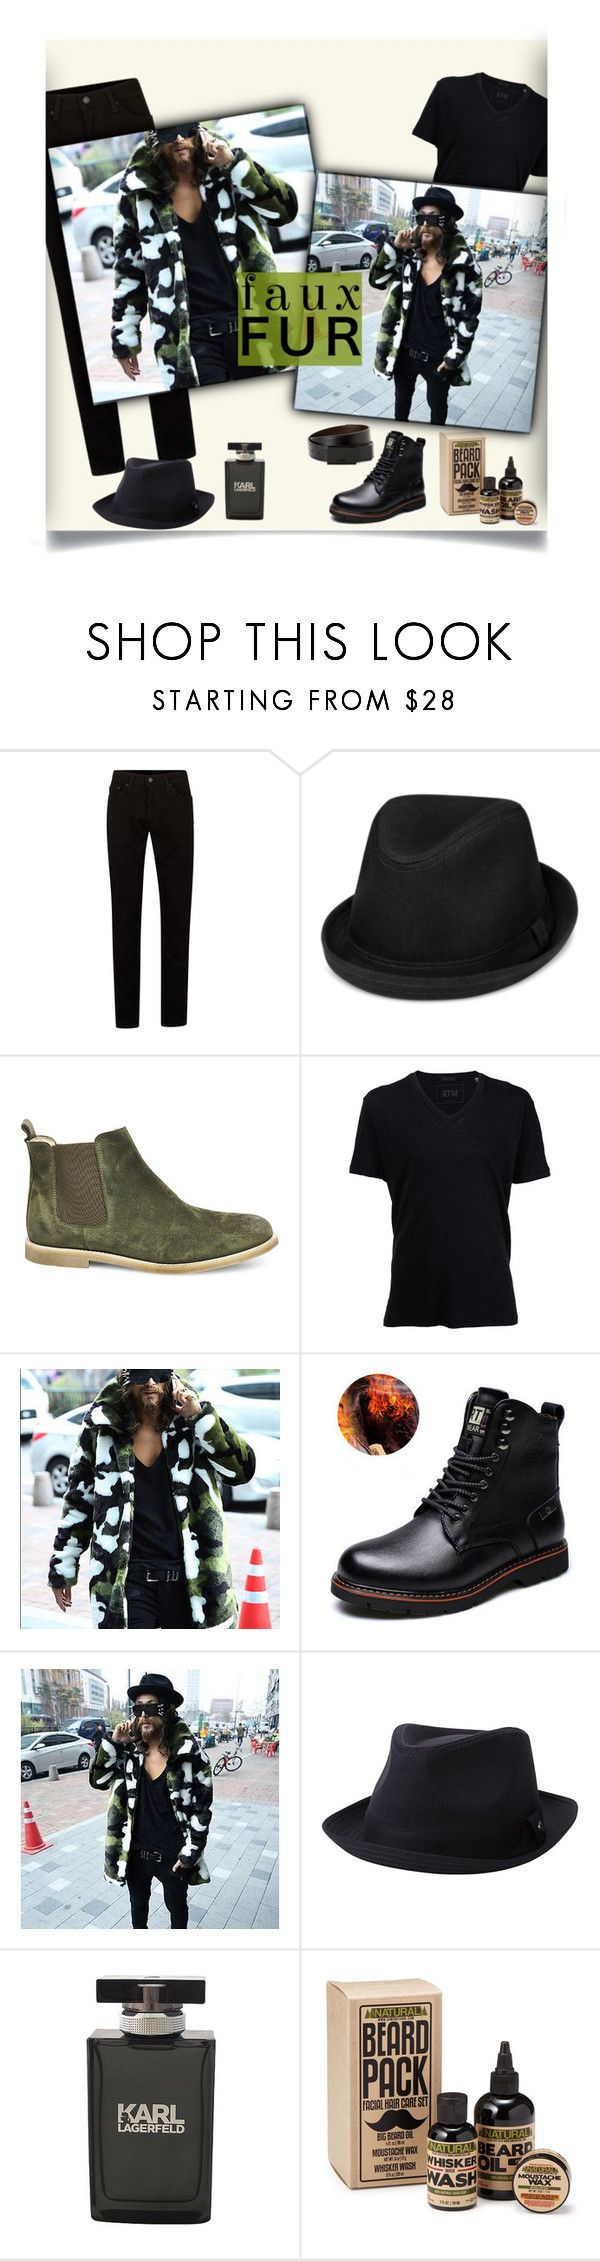 """""""Faux Fur Coats: Camouflage Parka"""" by tailormadelady ❤ liked on Polyvore featuring Topman, Levi's, Steve Madden, ATM by Anthony Thomas Melillo, Haggar, Karl Lagerfeld, Kenneth Cole Reaction, men's fashion and menswear"""